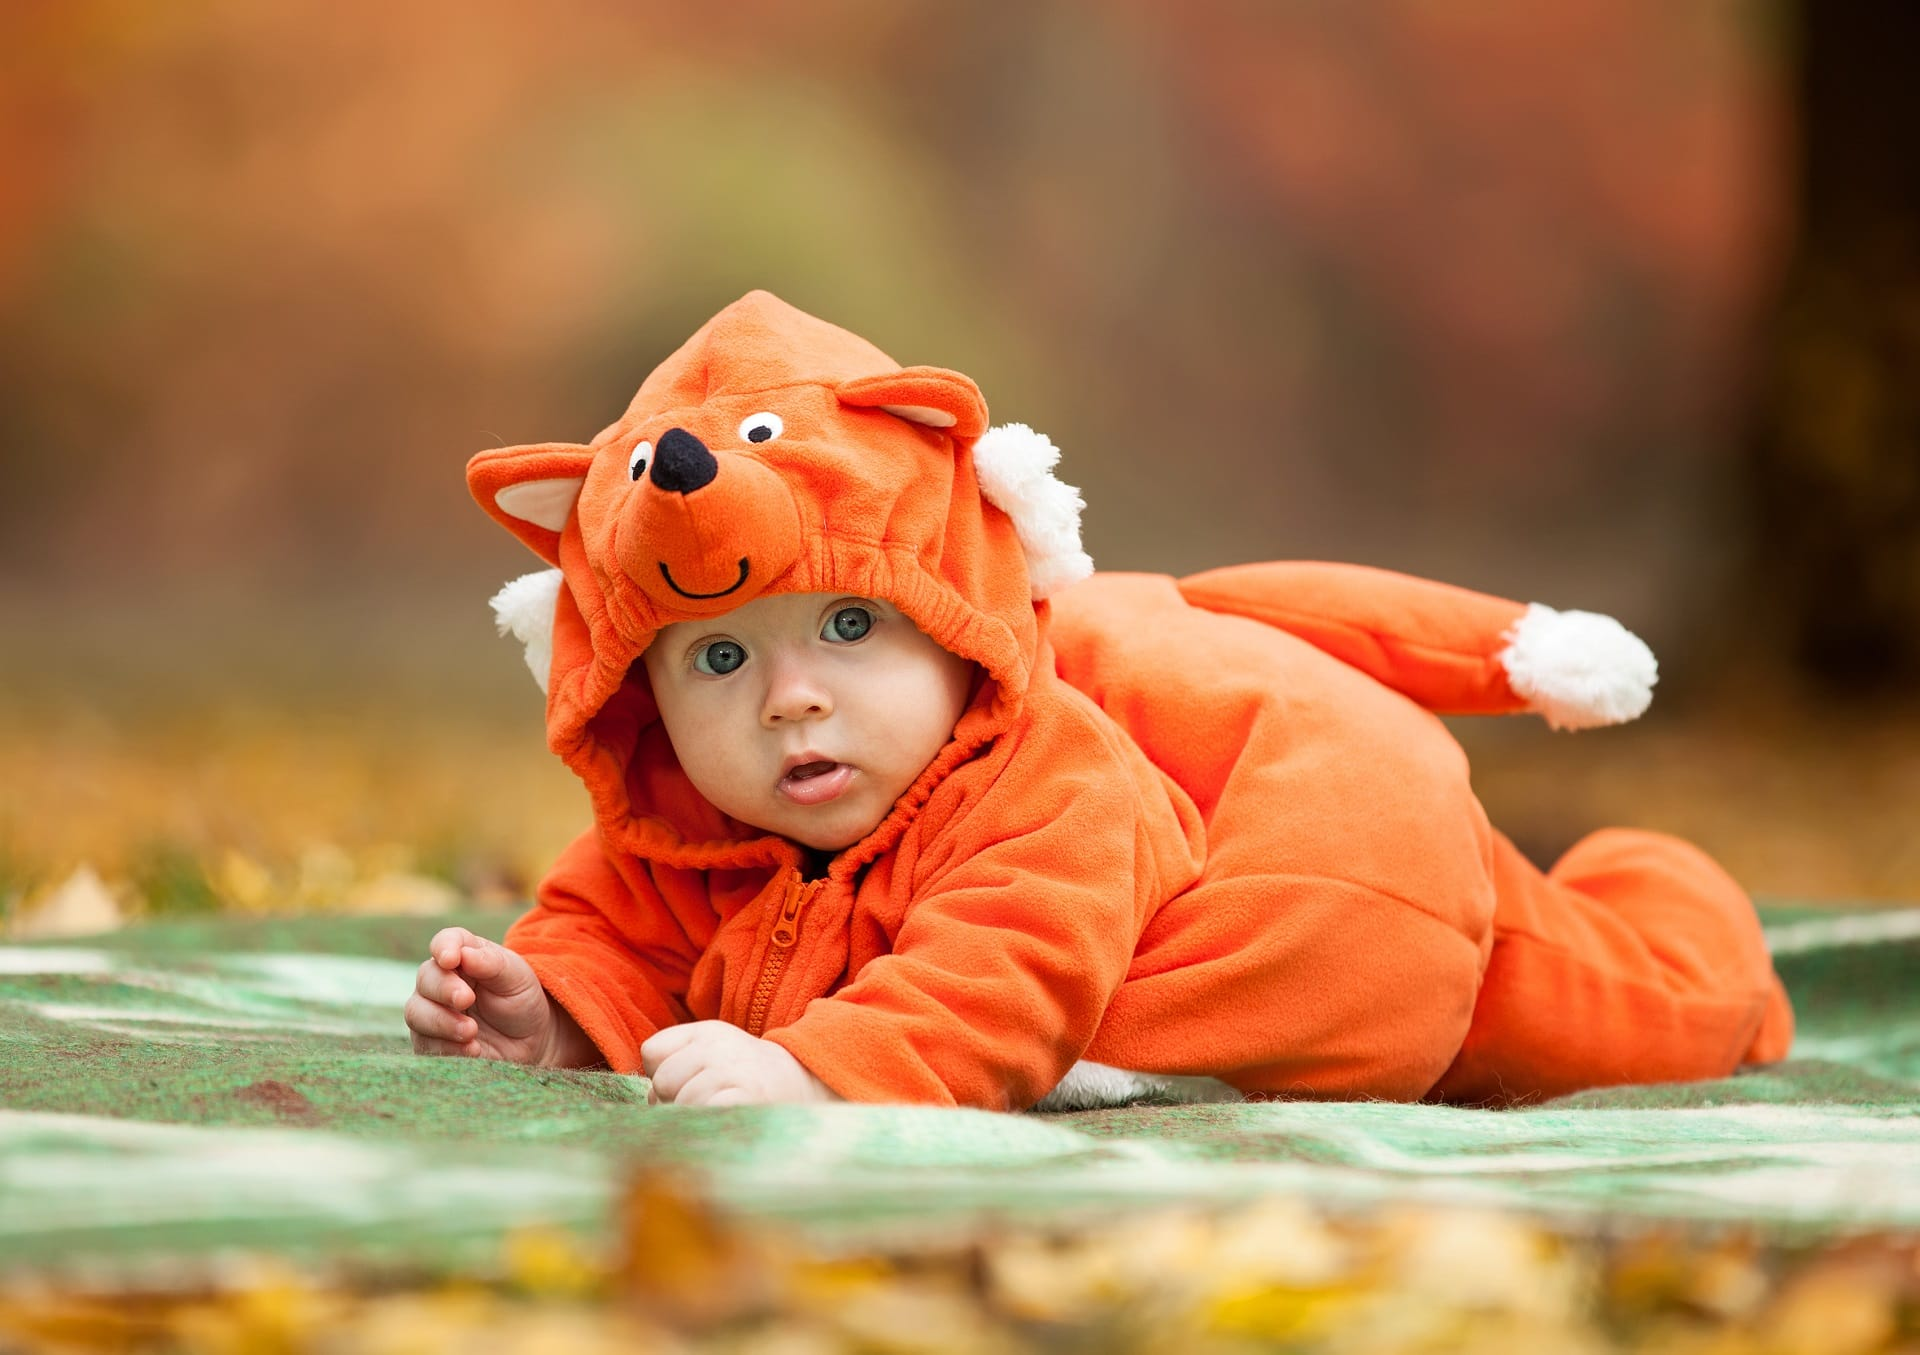 baby dream meaning, dream about baby, baby dream interpretation, seeing in a dream baby